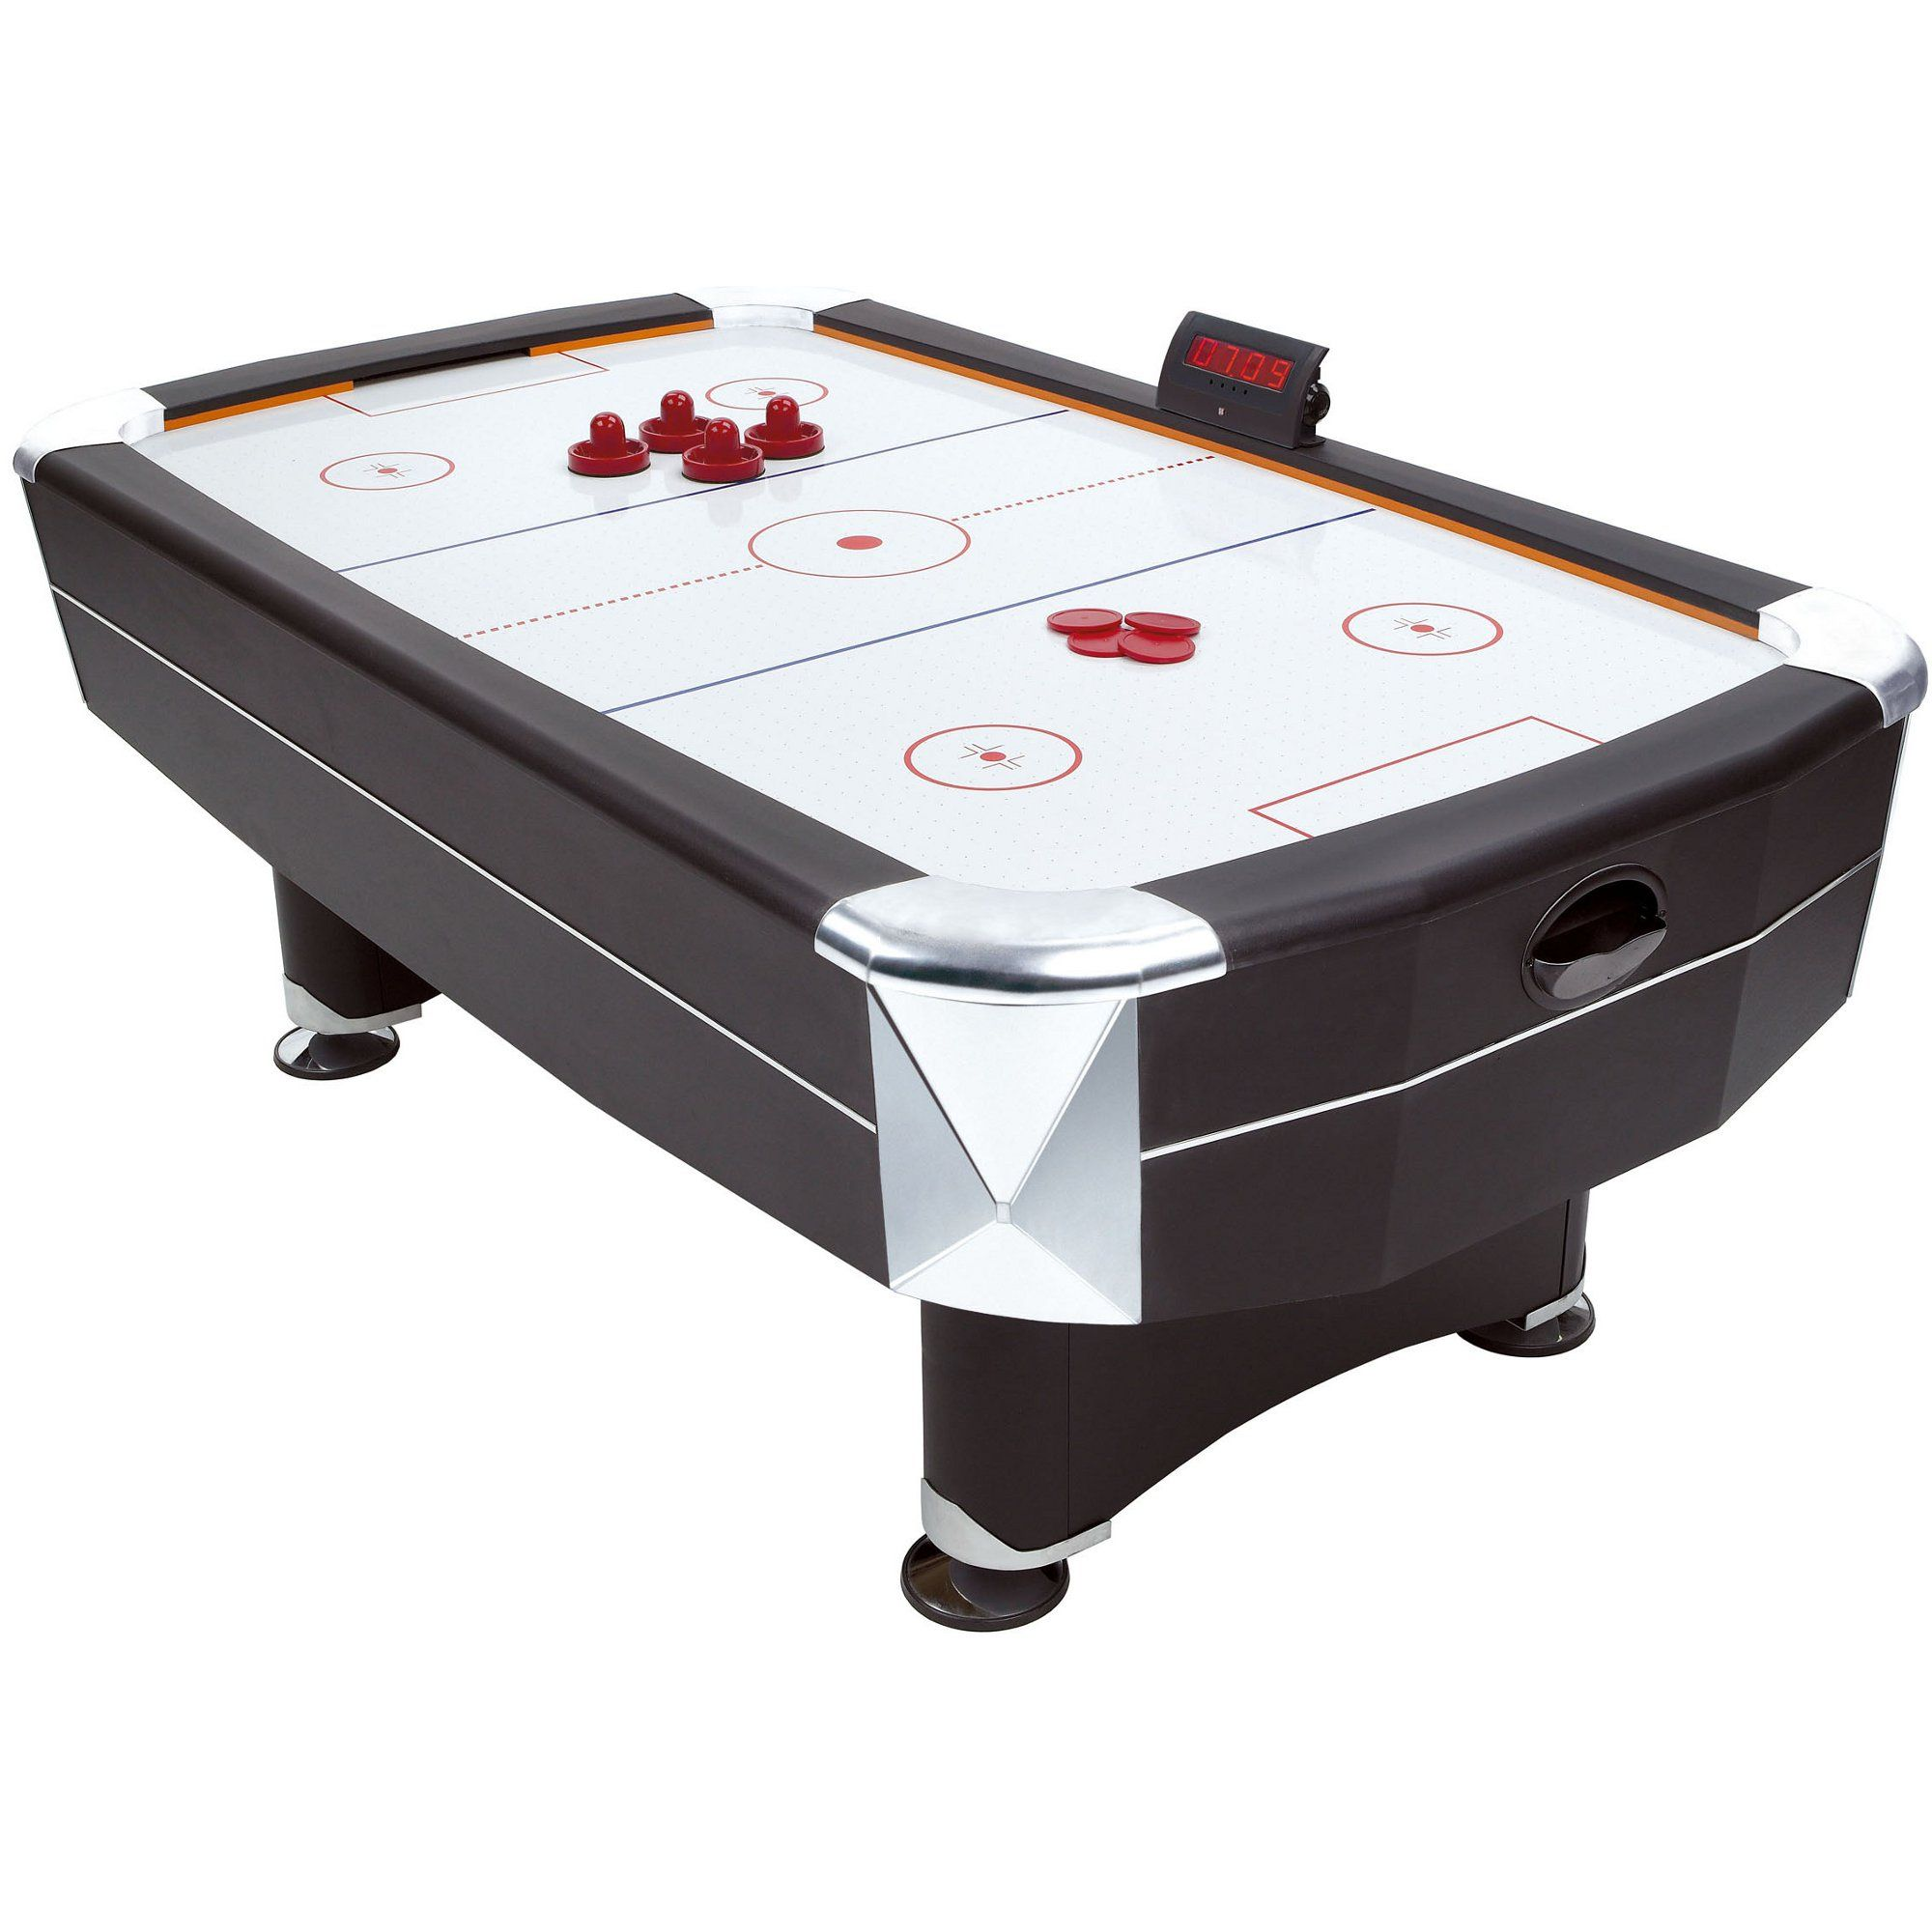 Mightymast vortex air hockey table for Table hockey